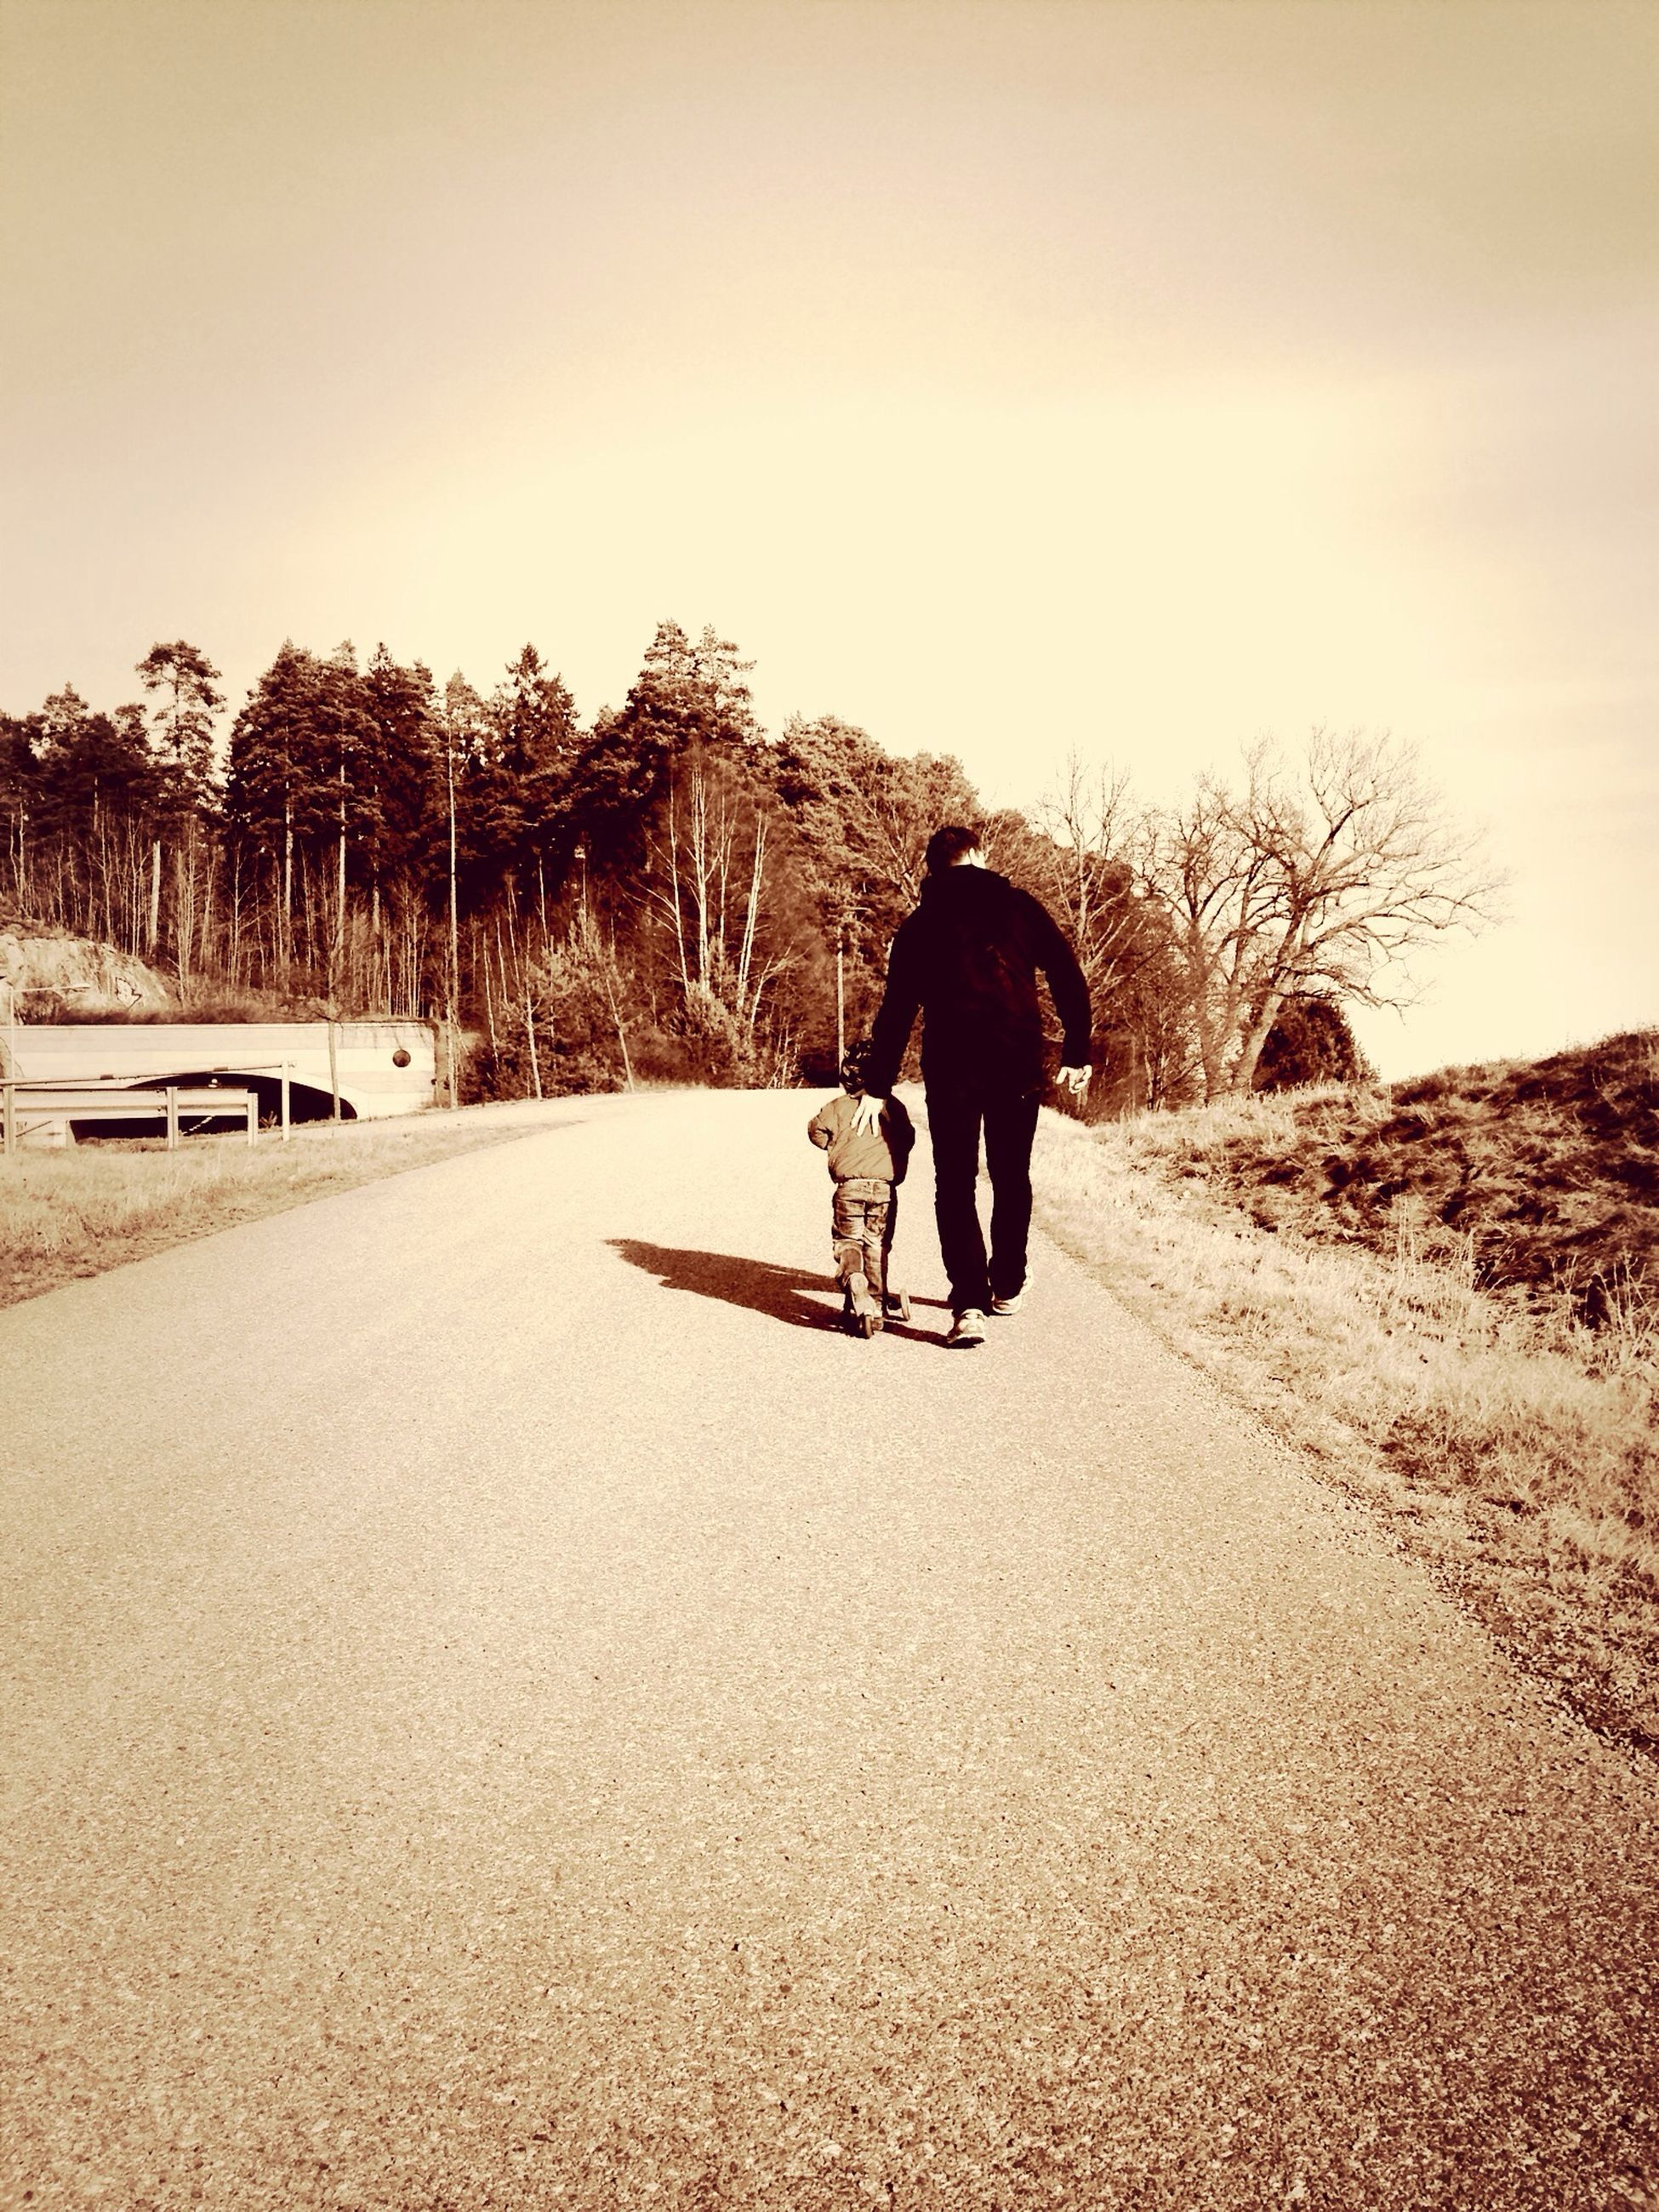 full length, rear view, walking, the way forward, tree, road, lifestyles, leisure activity, clear sky, men, transportation, landscape, dirt road, shadow, diminishing perspective, sunlight, street, tranquil scene